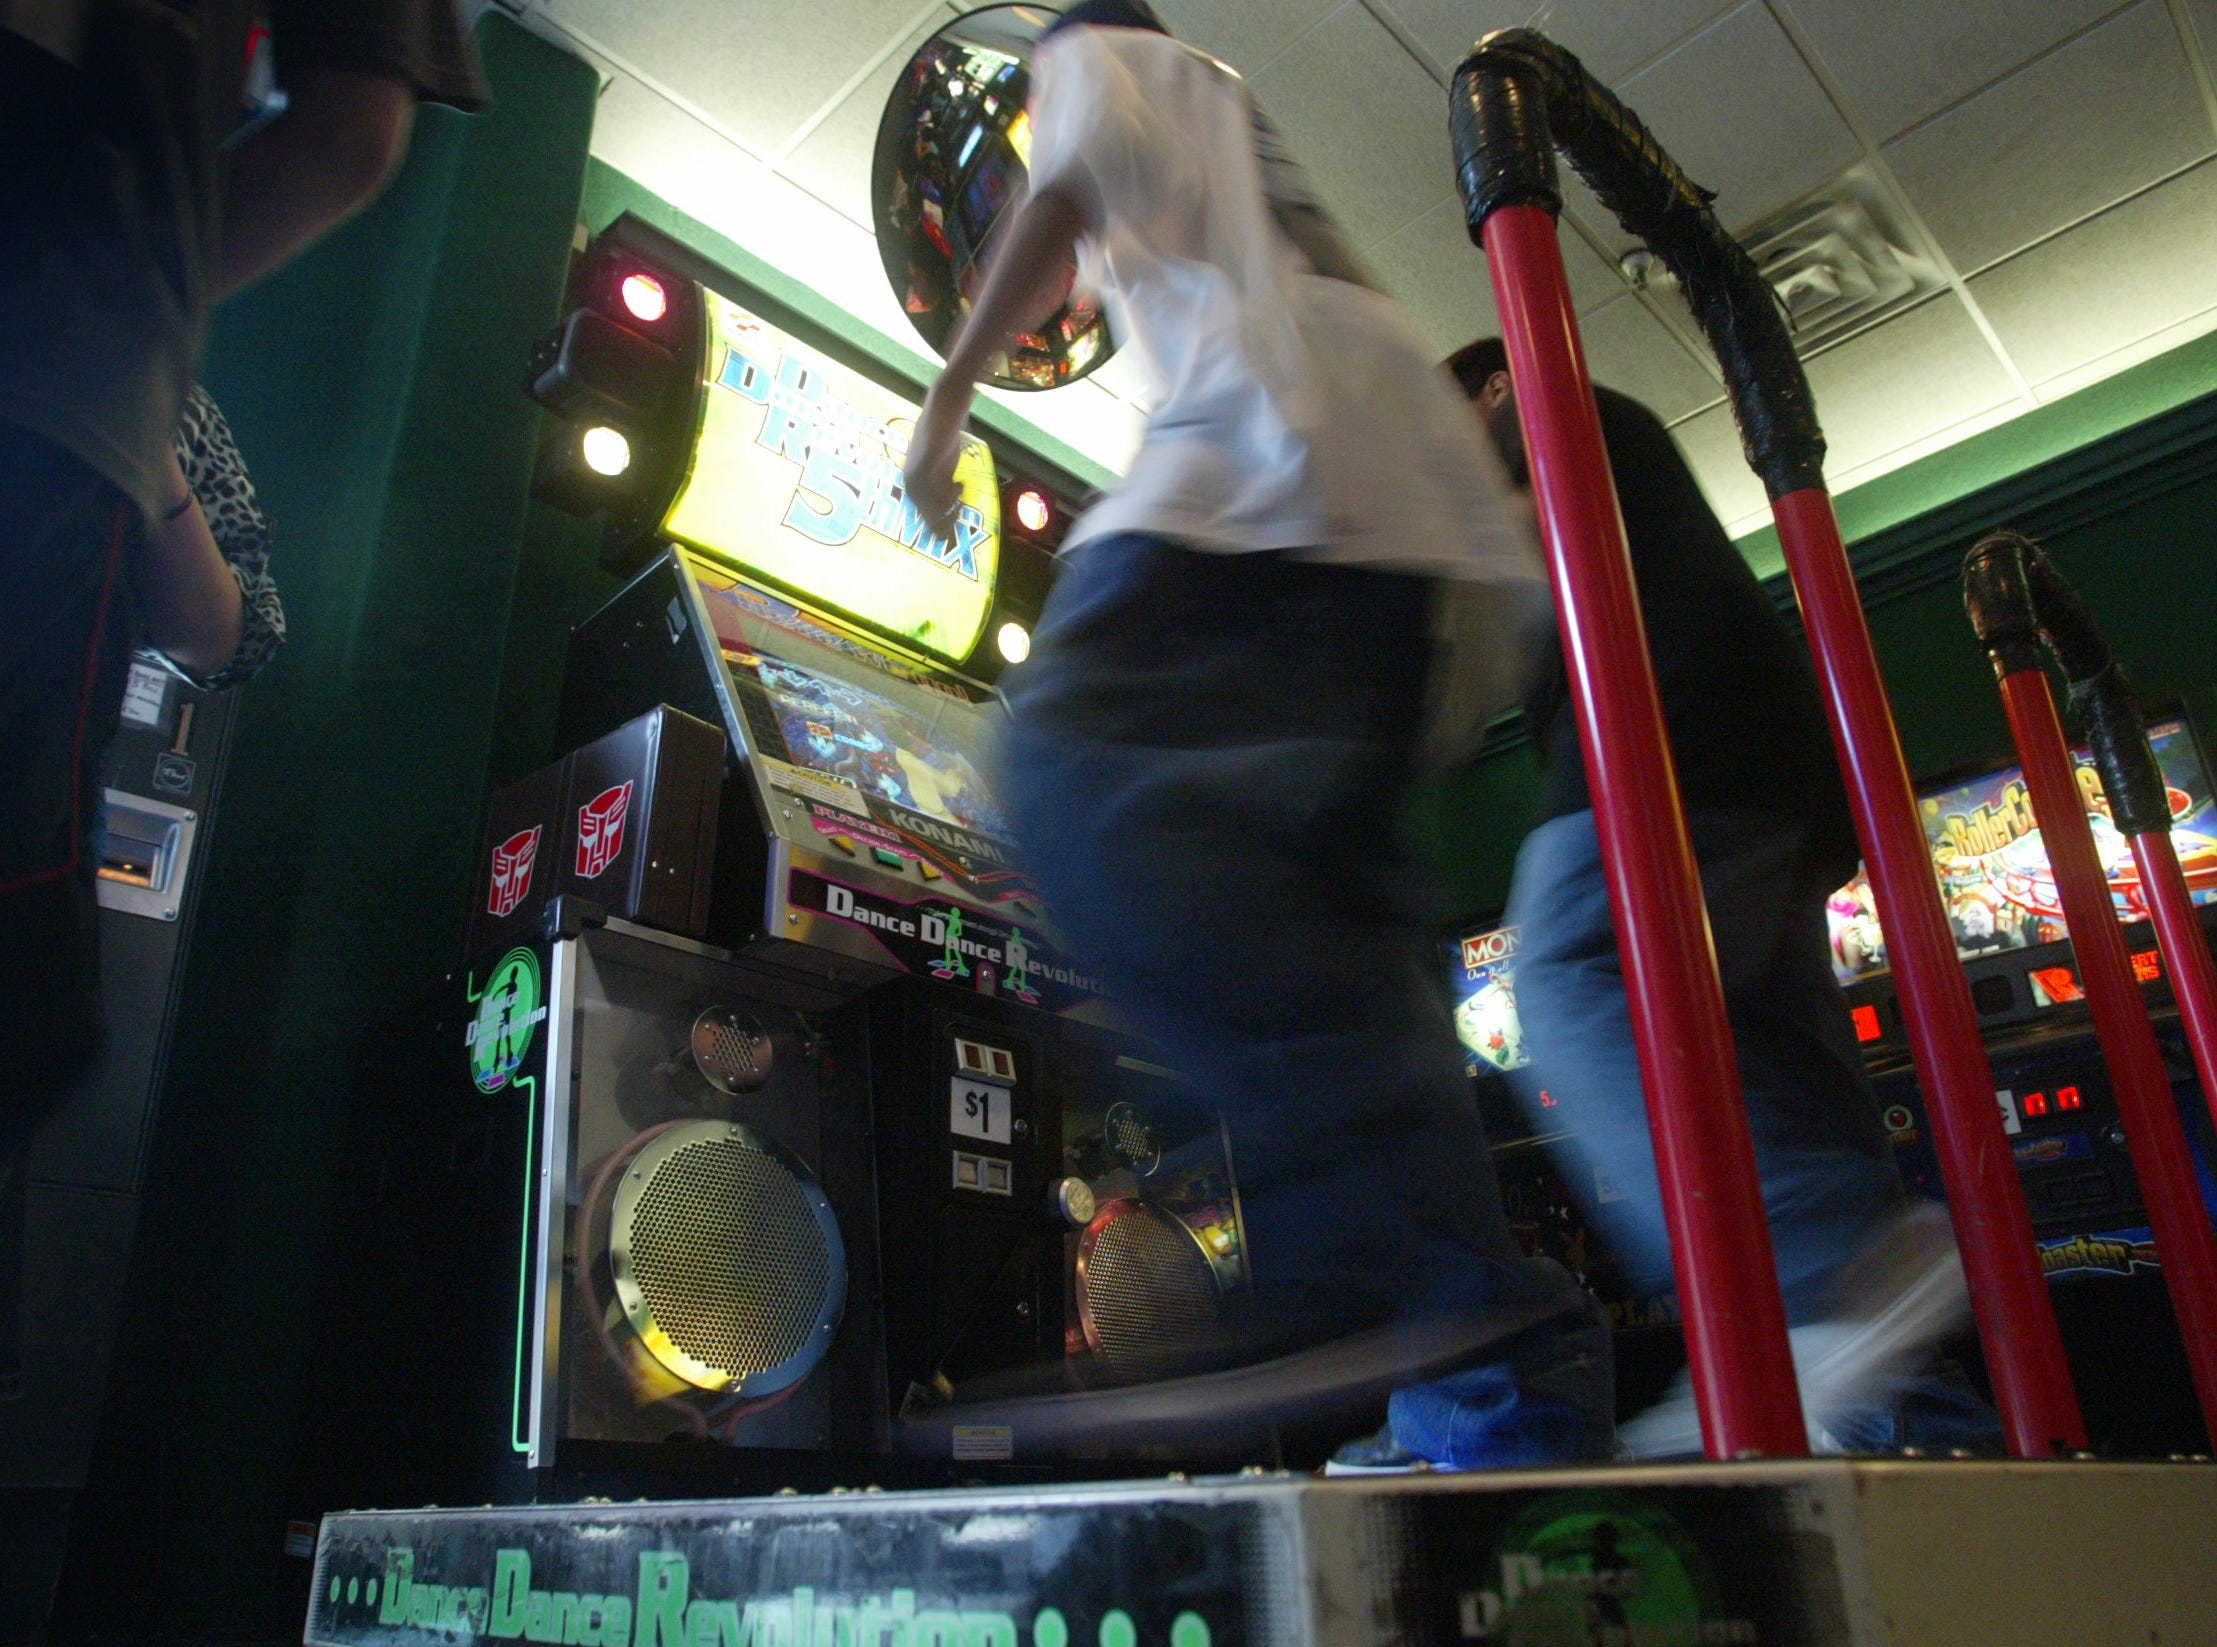 Dance Dance Revolution game at Fun N Games in Wayne.